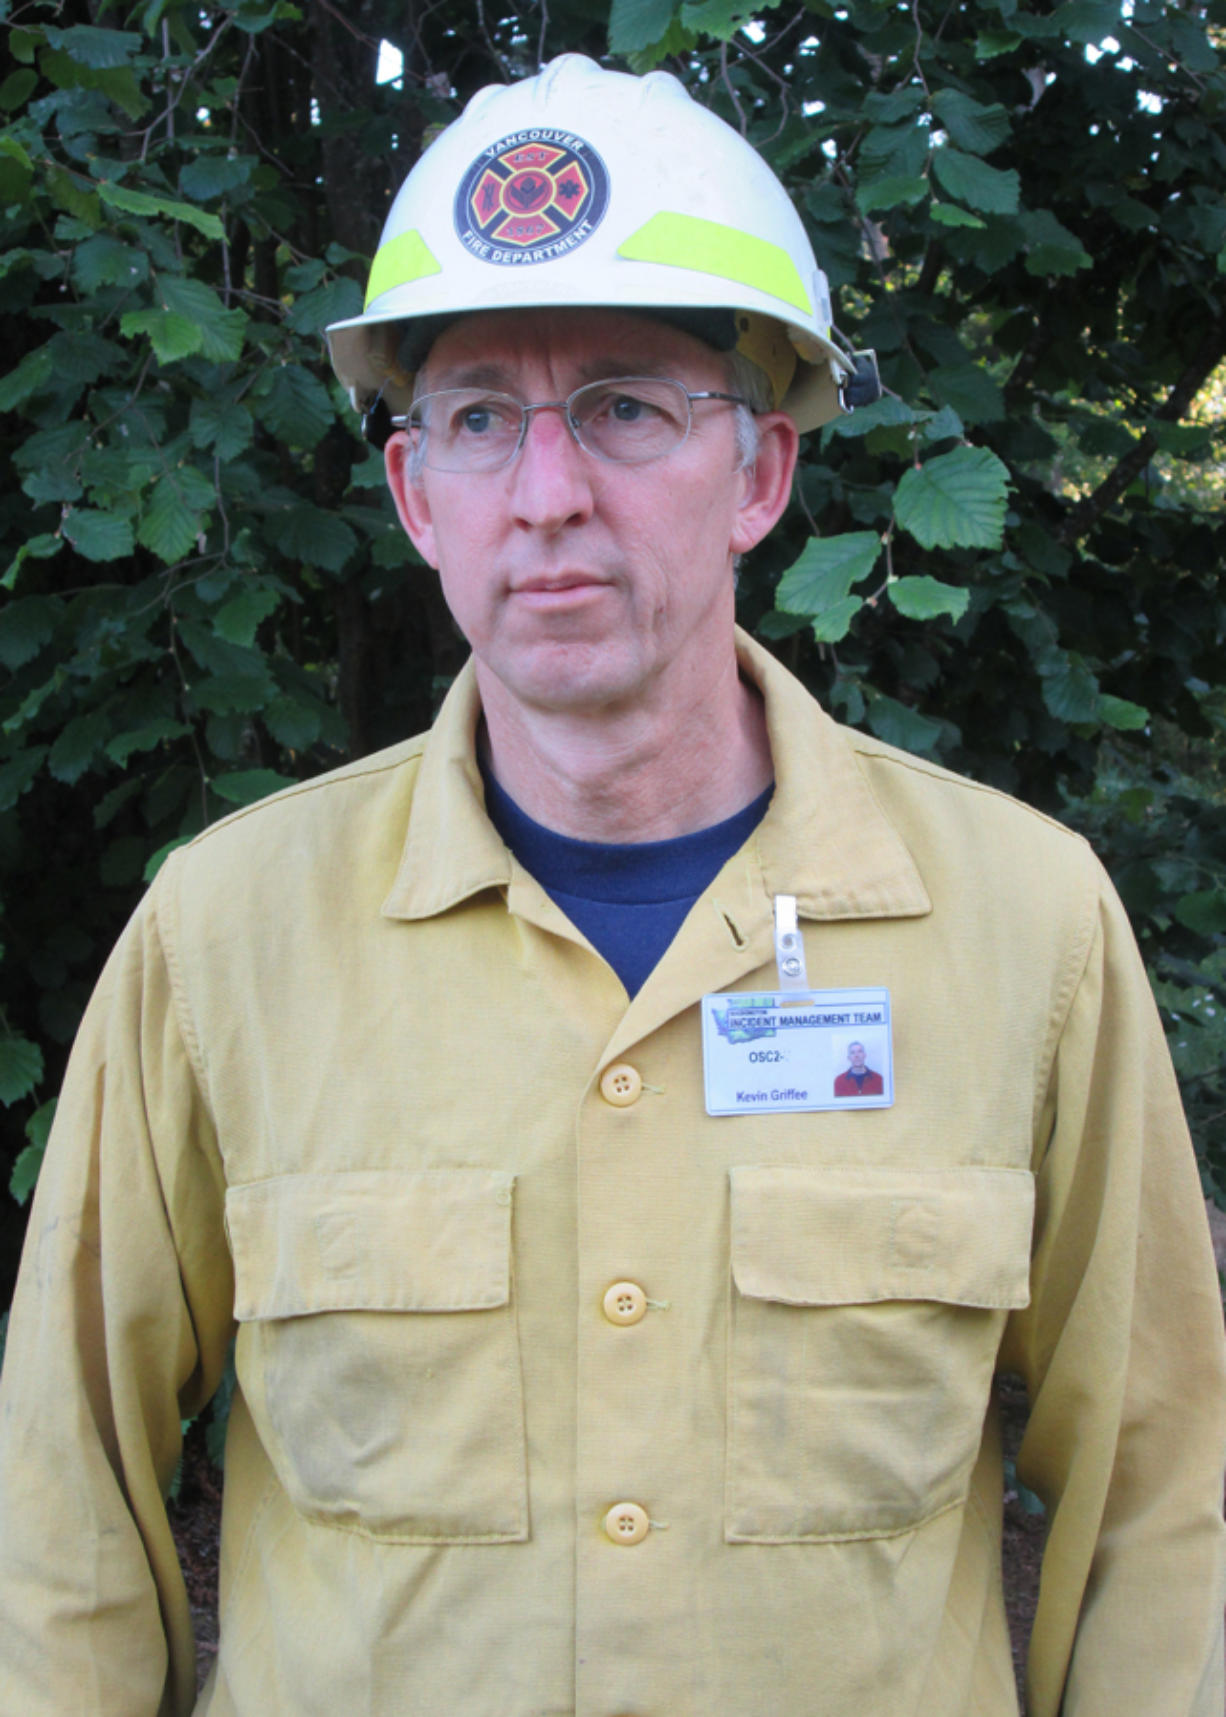 Kevin Griffee, Vancouver Fire battalion chief